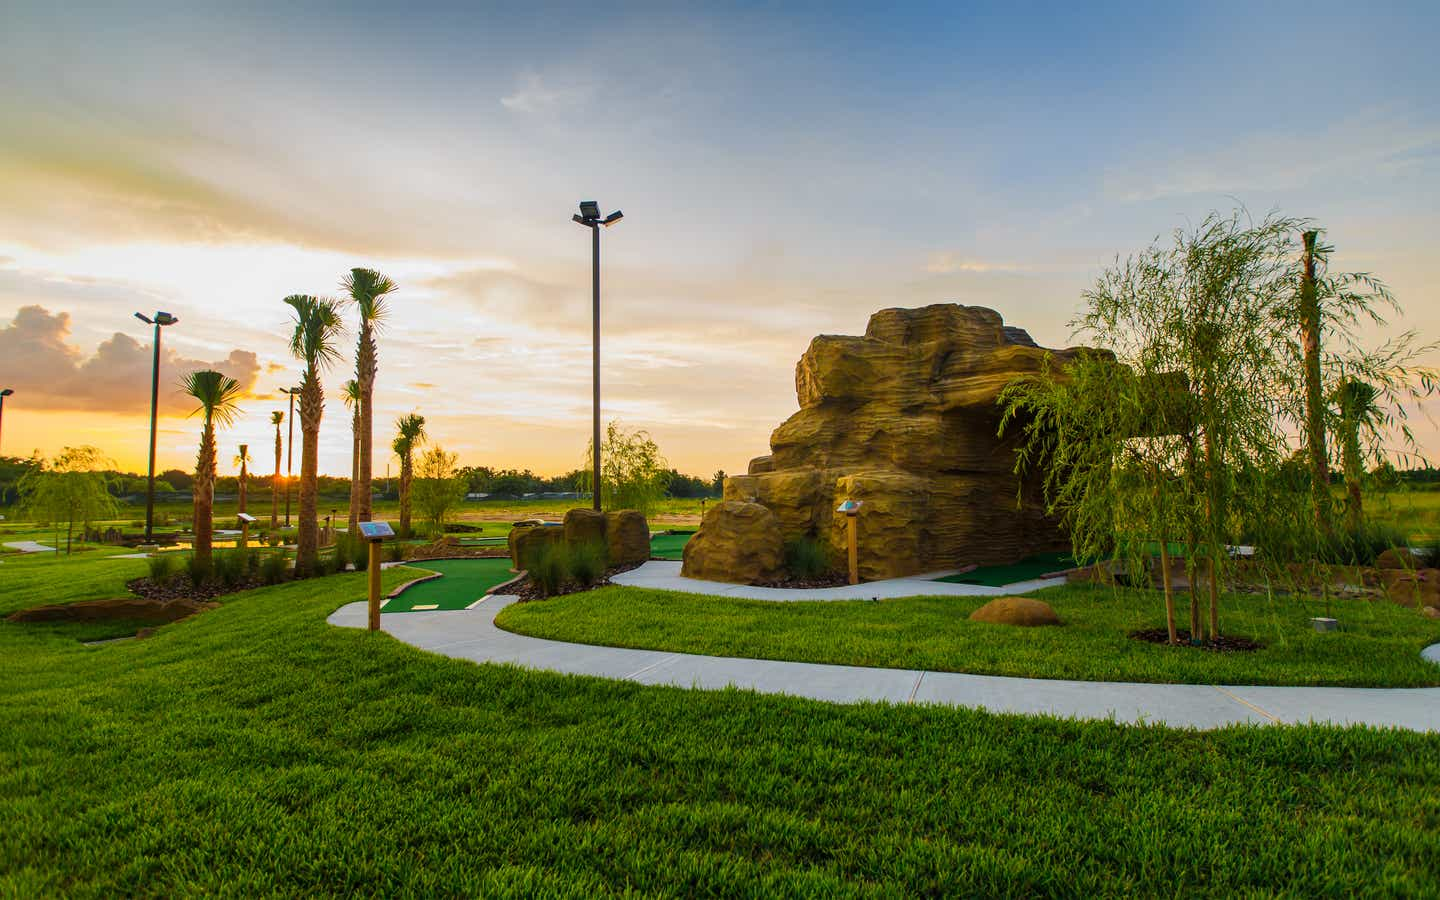 Outdoor mini golf course at Orlando Breeze Resort in Orlando, Florida.